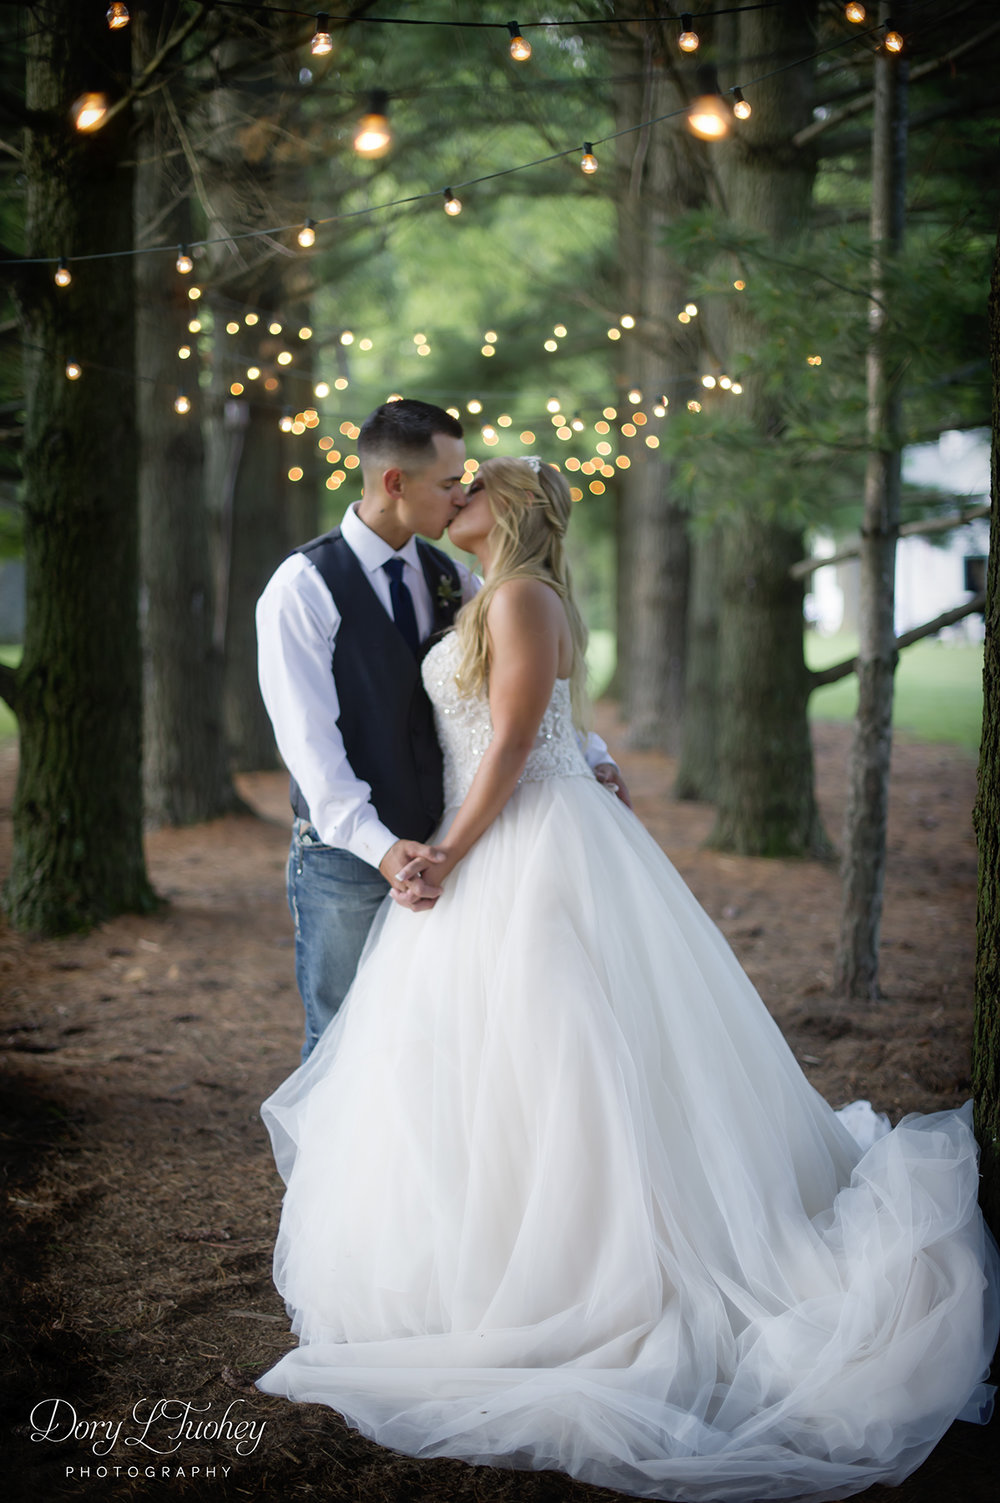 Dory_wedding_oak_hill_galena_farm_horses_field_bride_tulle_photographer_light_pine_tree_kiss_love_groom_twinkle_02.jpg